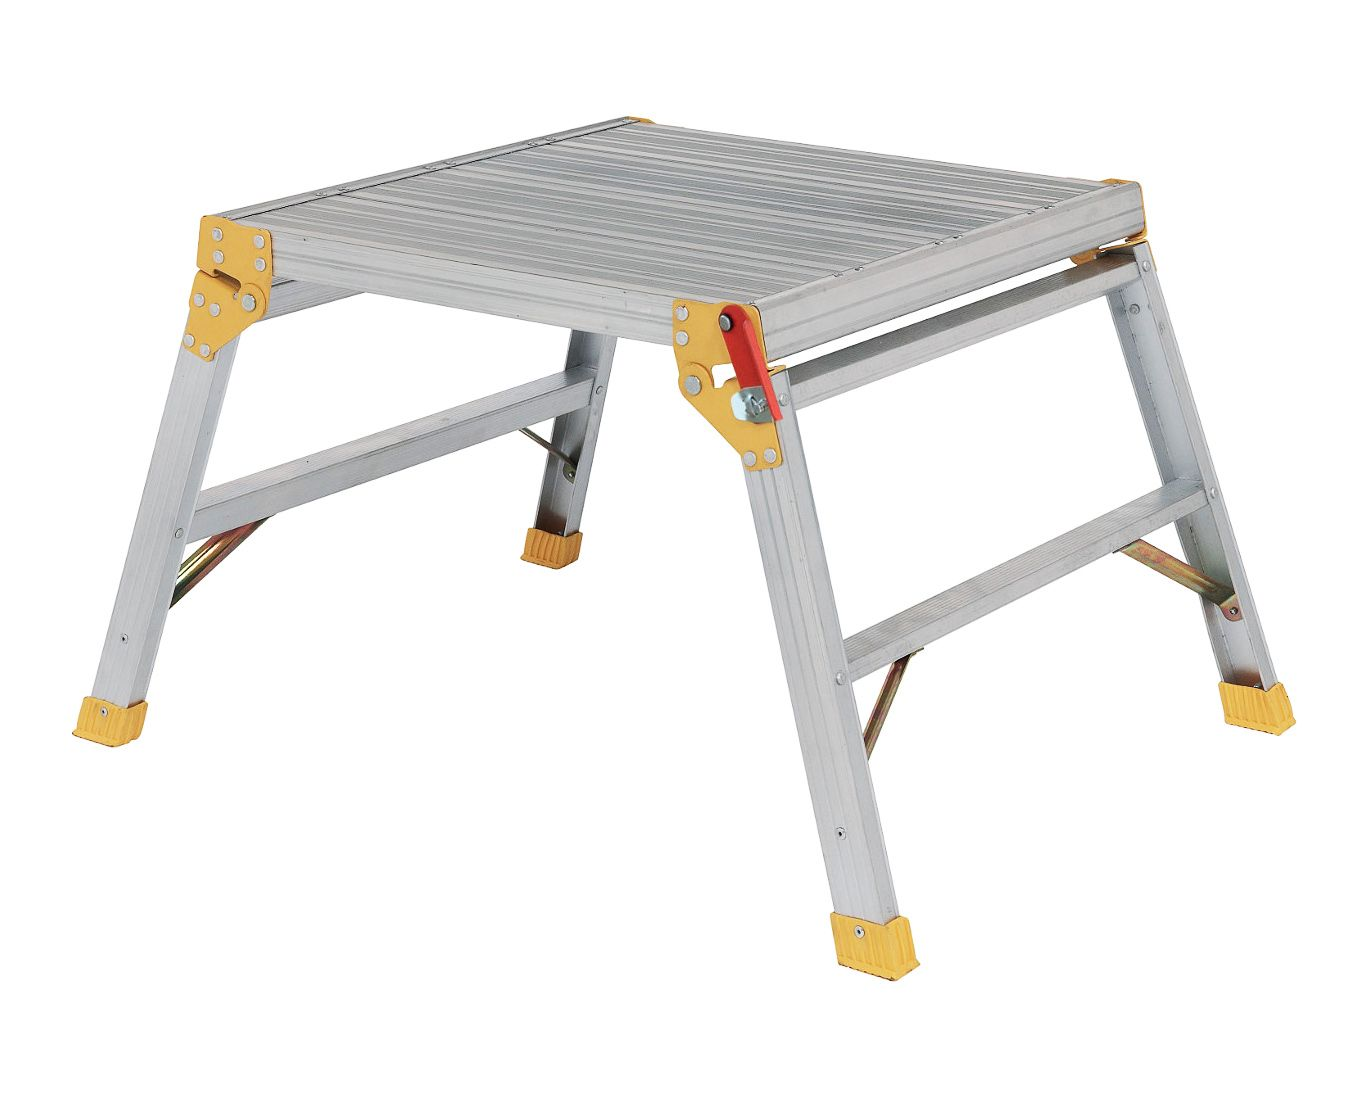 Youngman Odd Job 600 Work Platform Step-Up